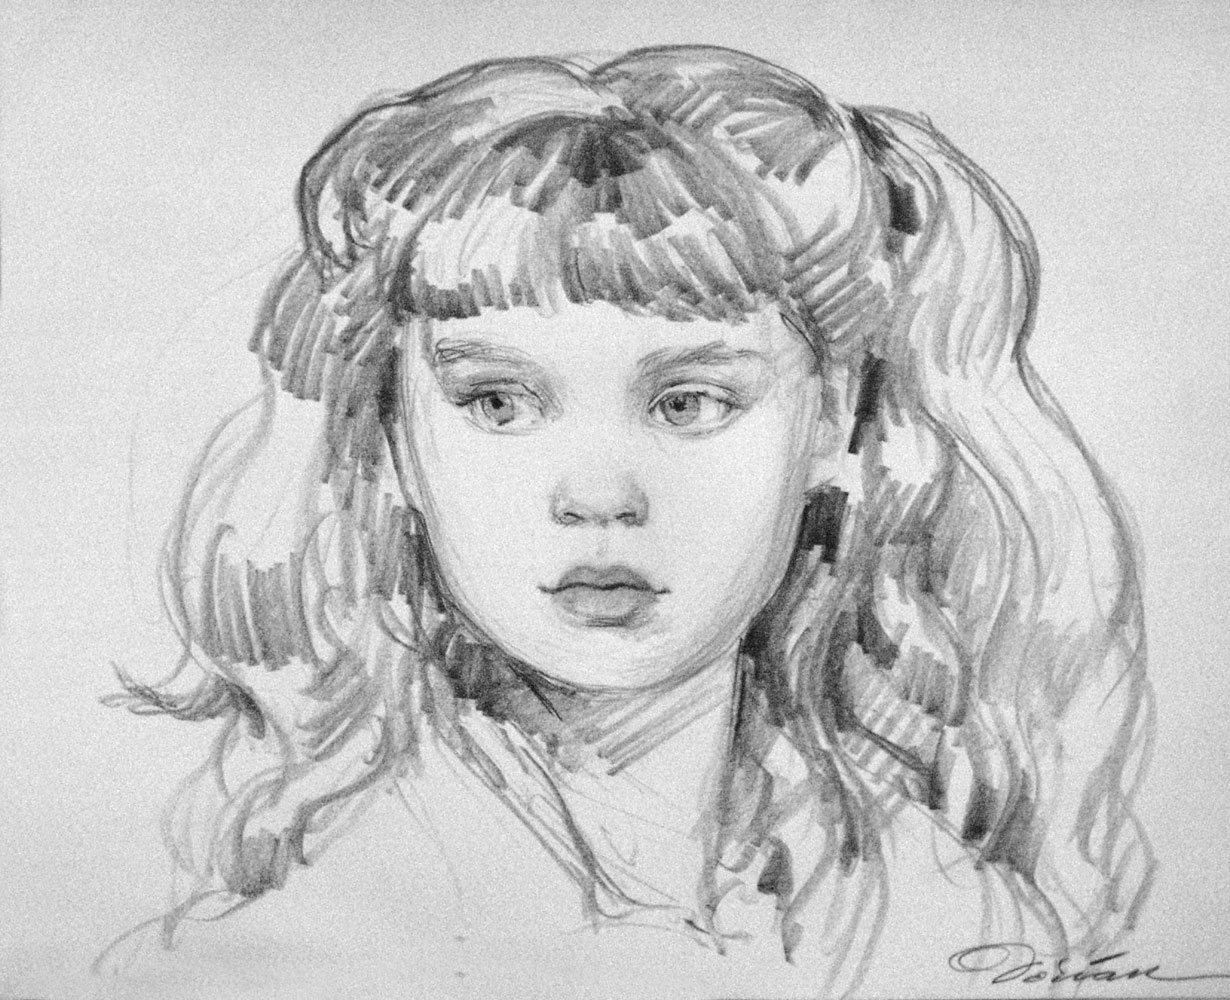 Pencil_Sketches_58.jpg